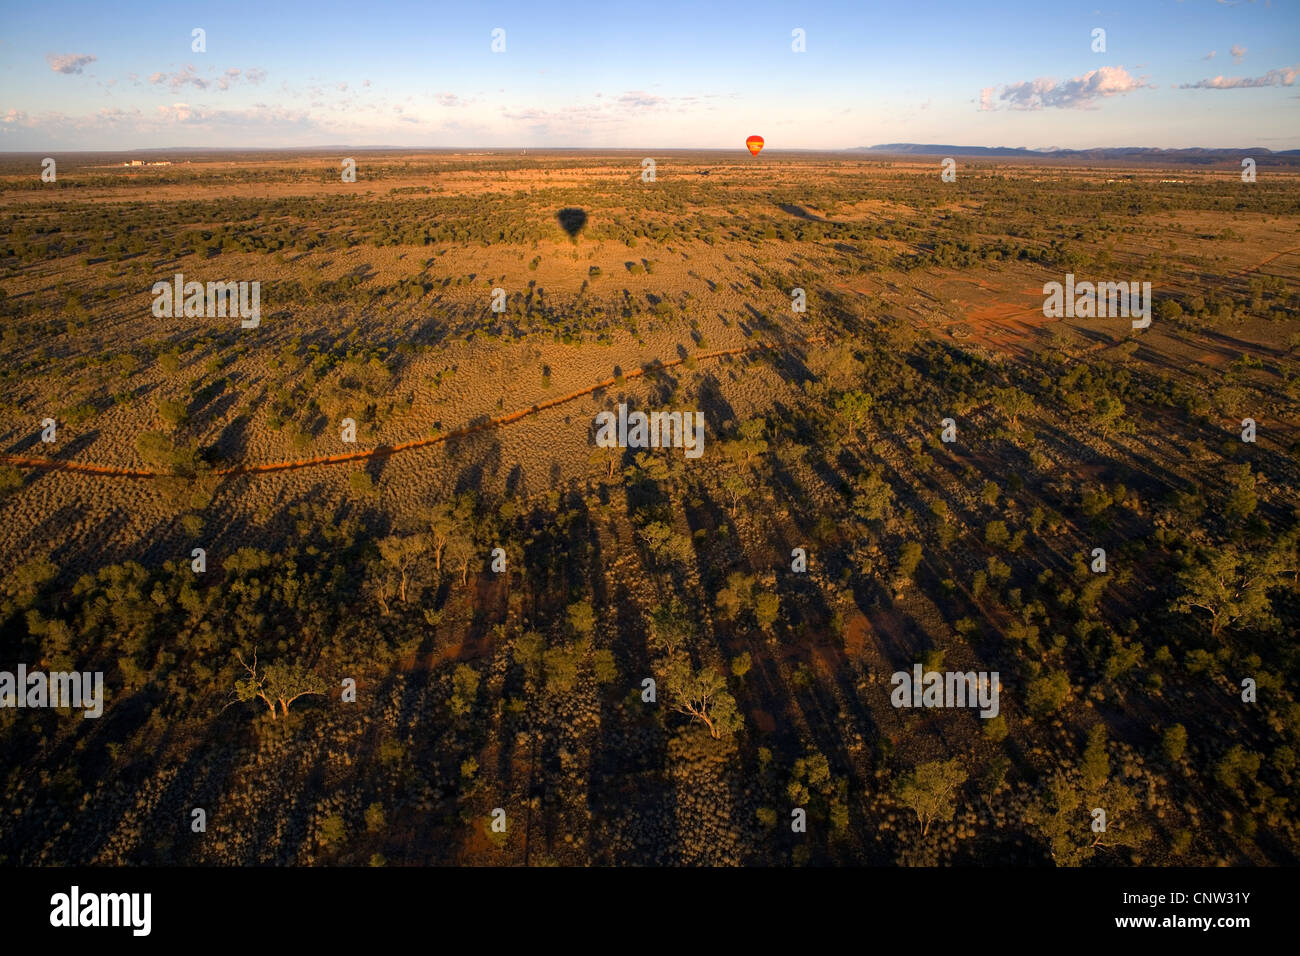 Hot air ballooning over the plains south of the MacDonnell Ranges, Alice Springs, Northern Territory, Australia - Stock Image